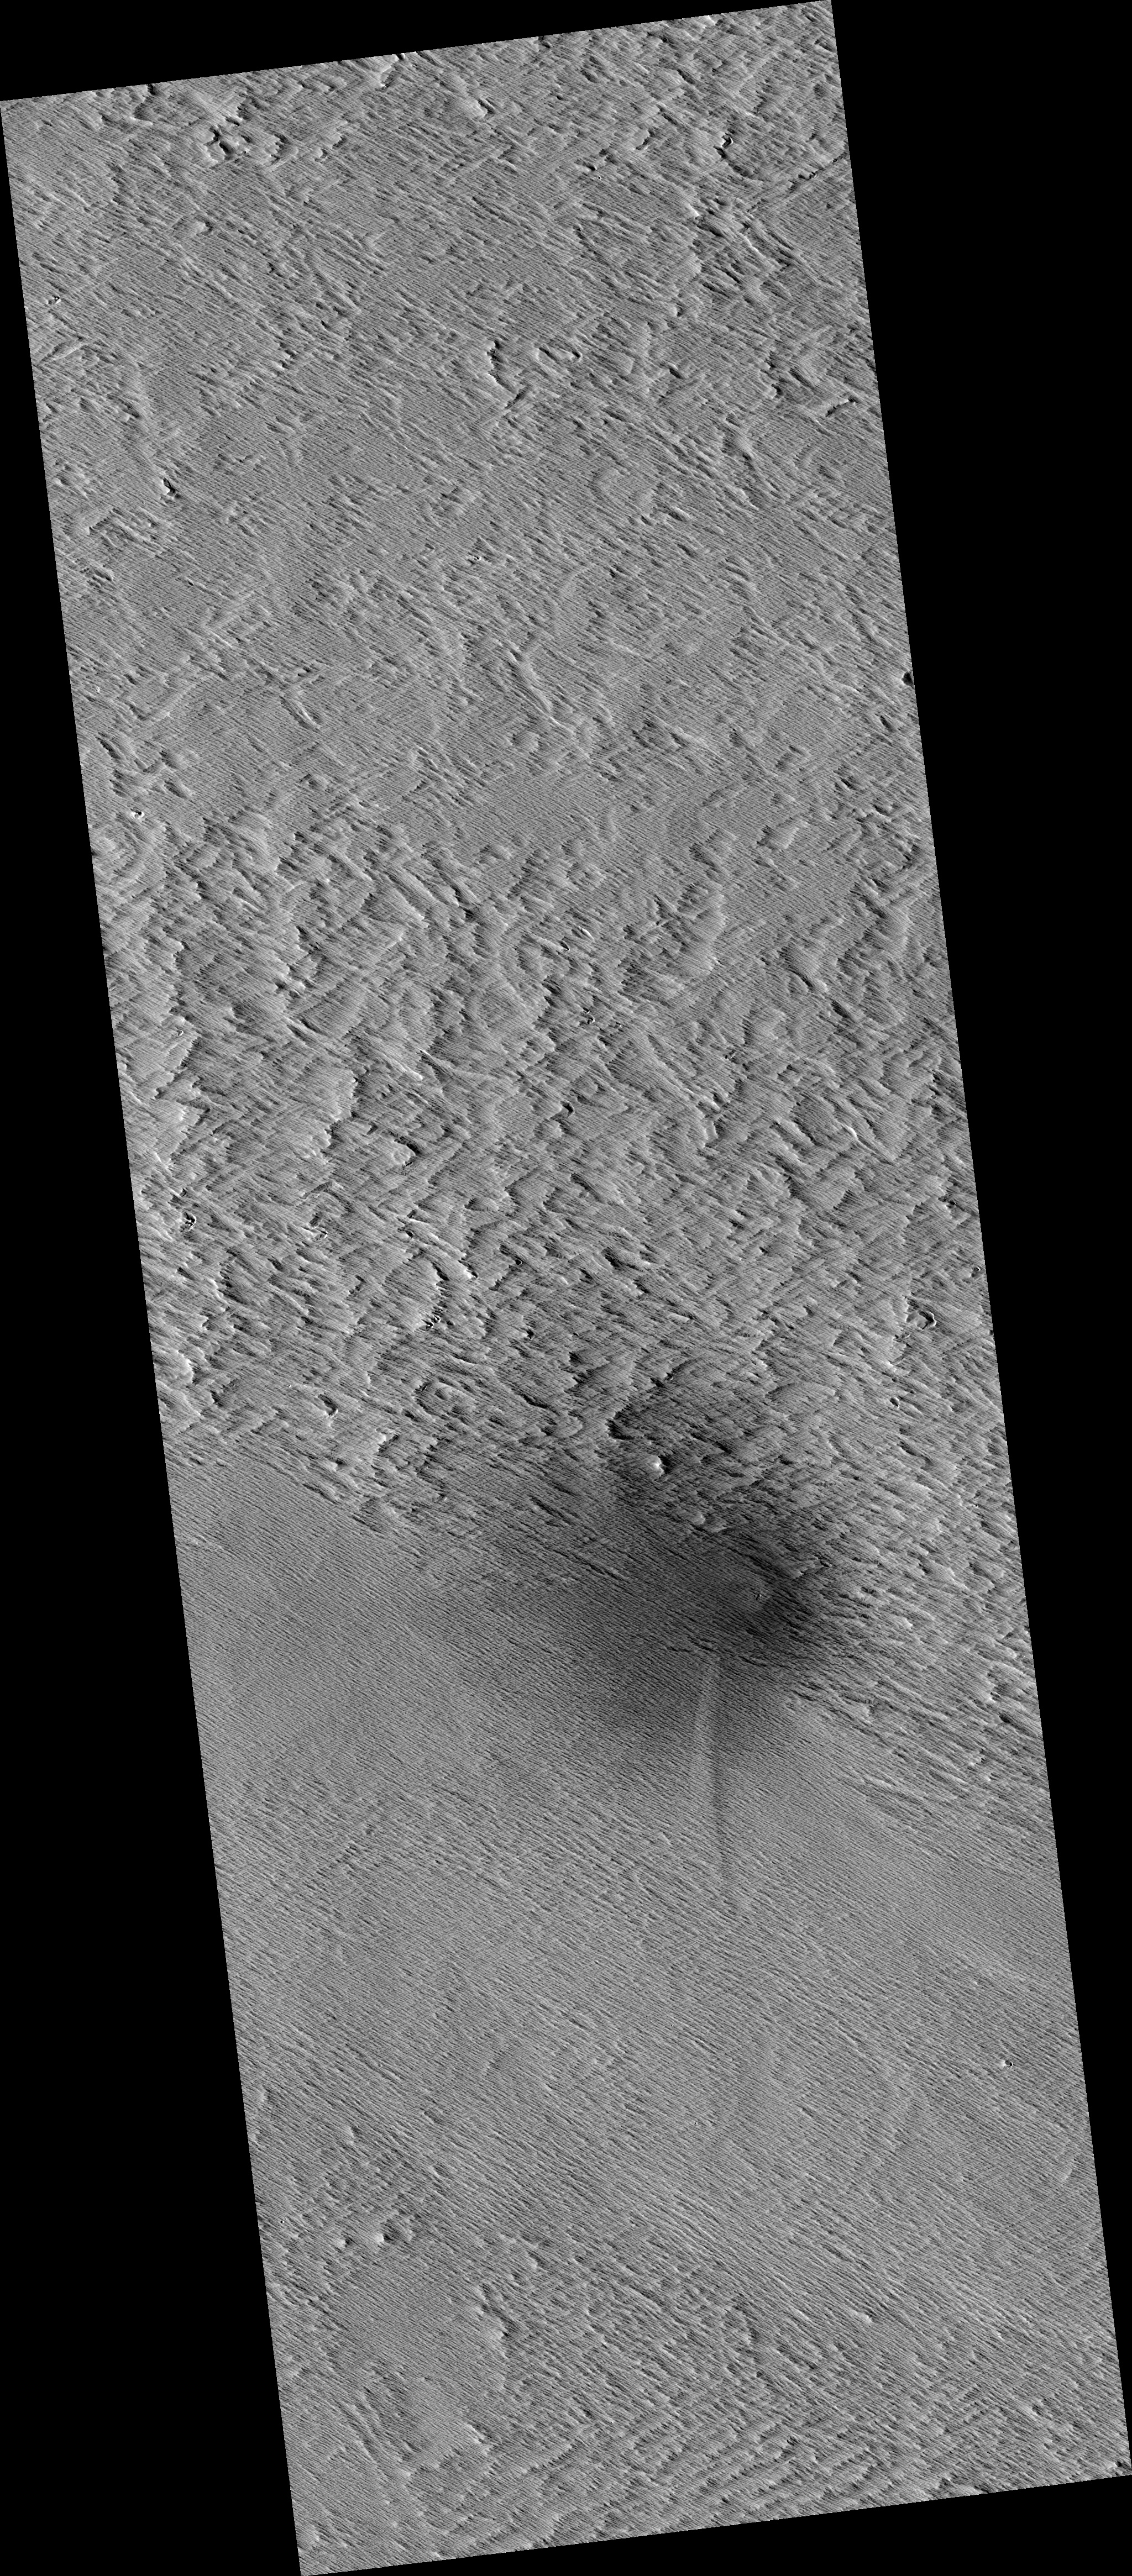 Dust Avalanches Triggered by Impact Event